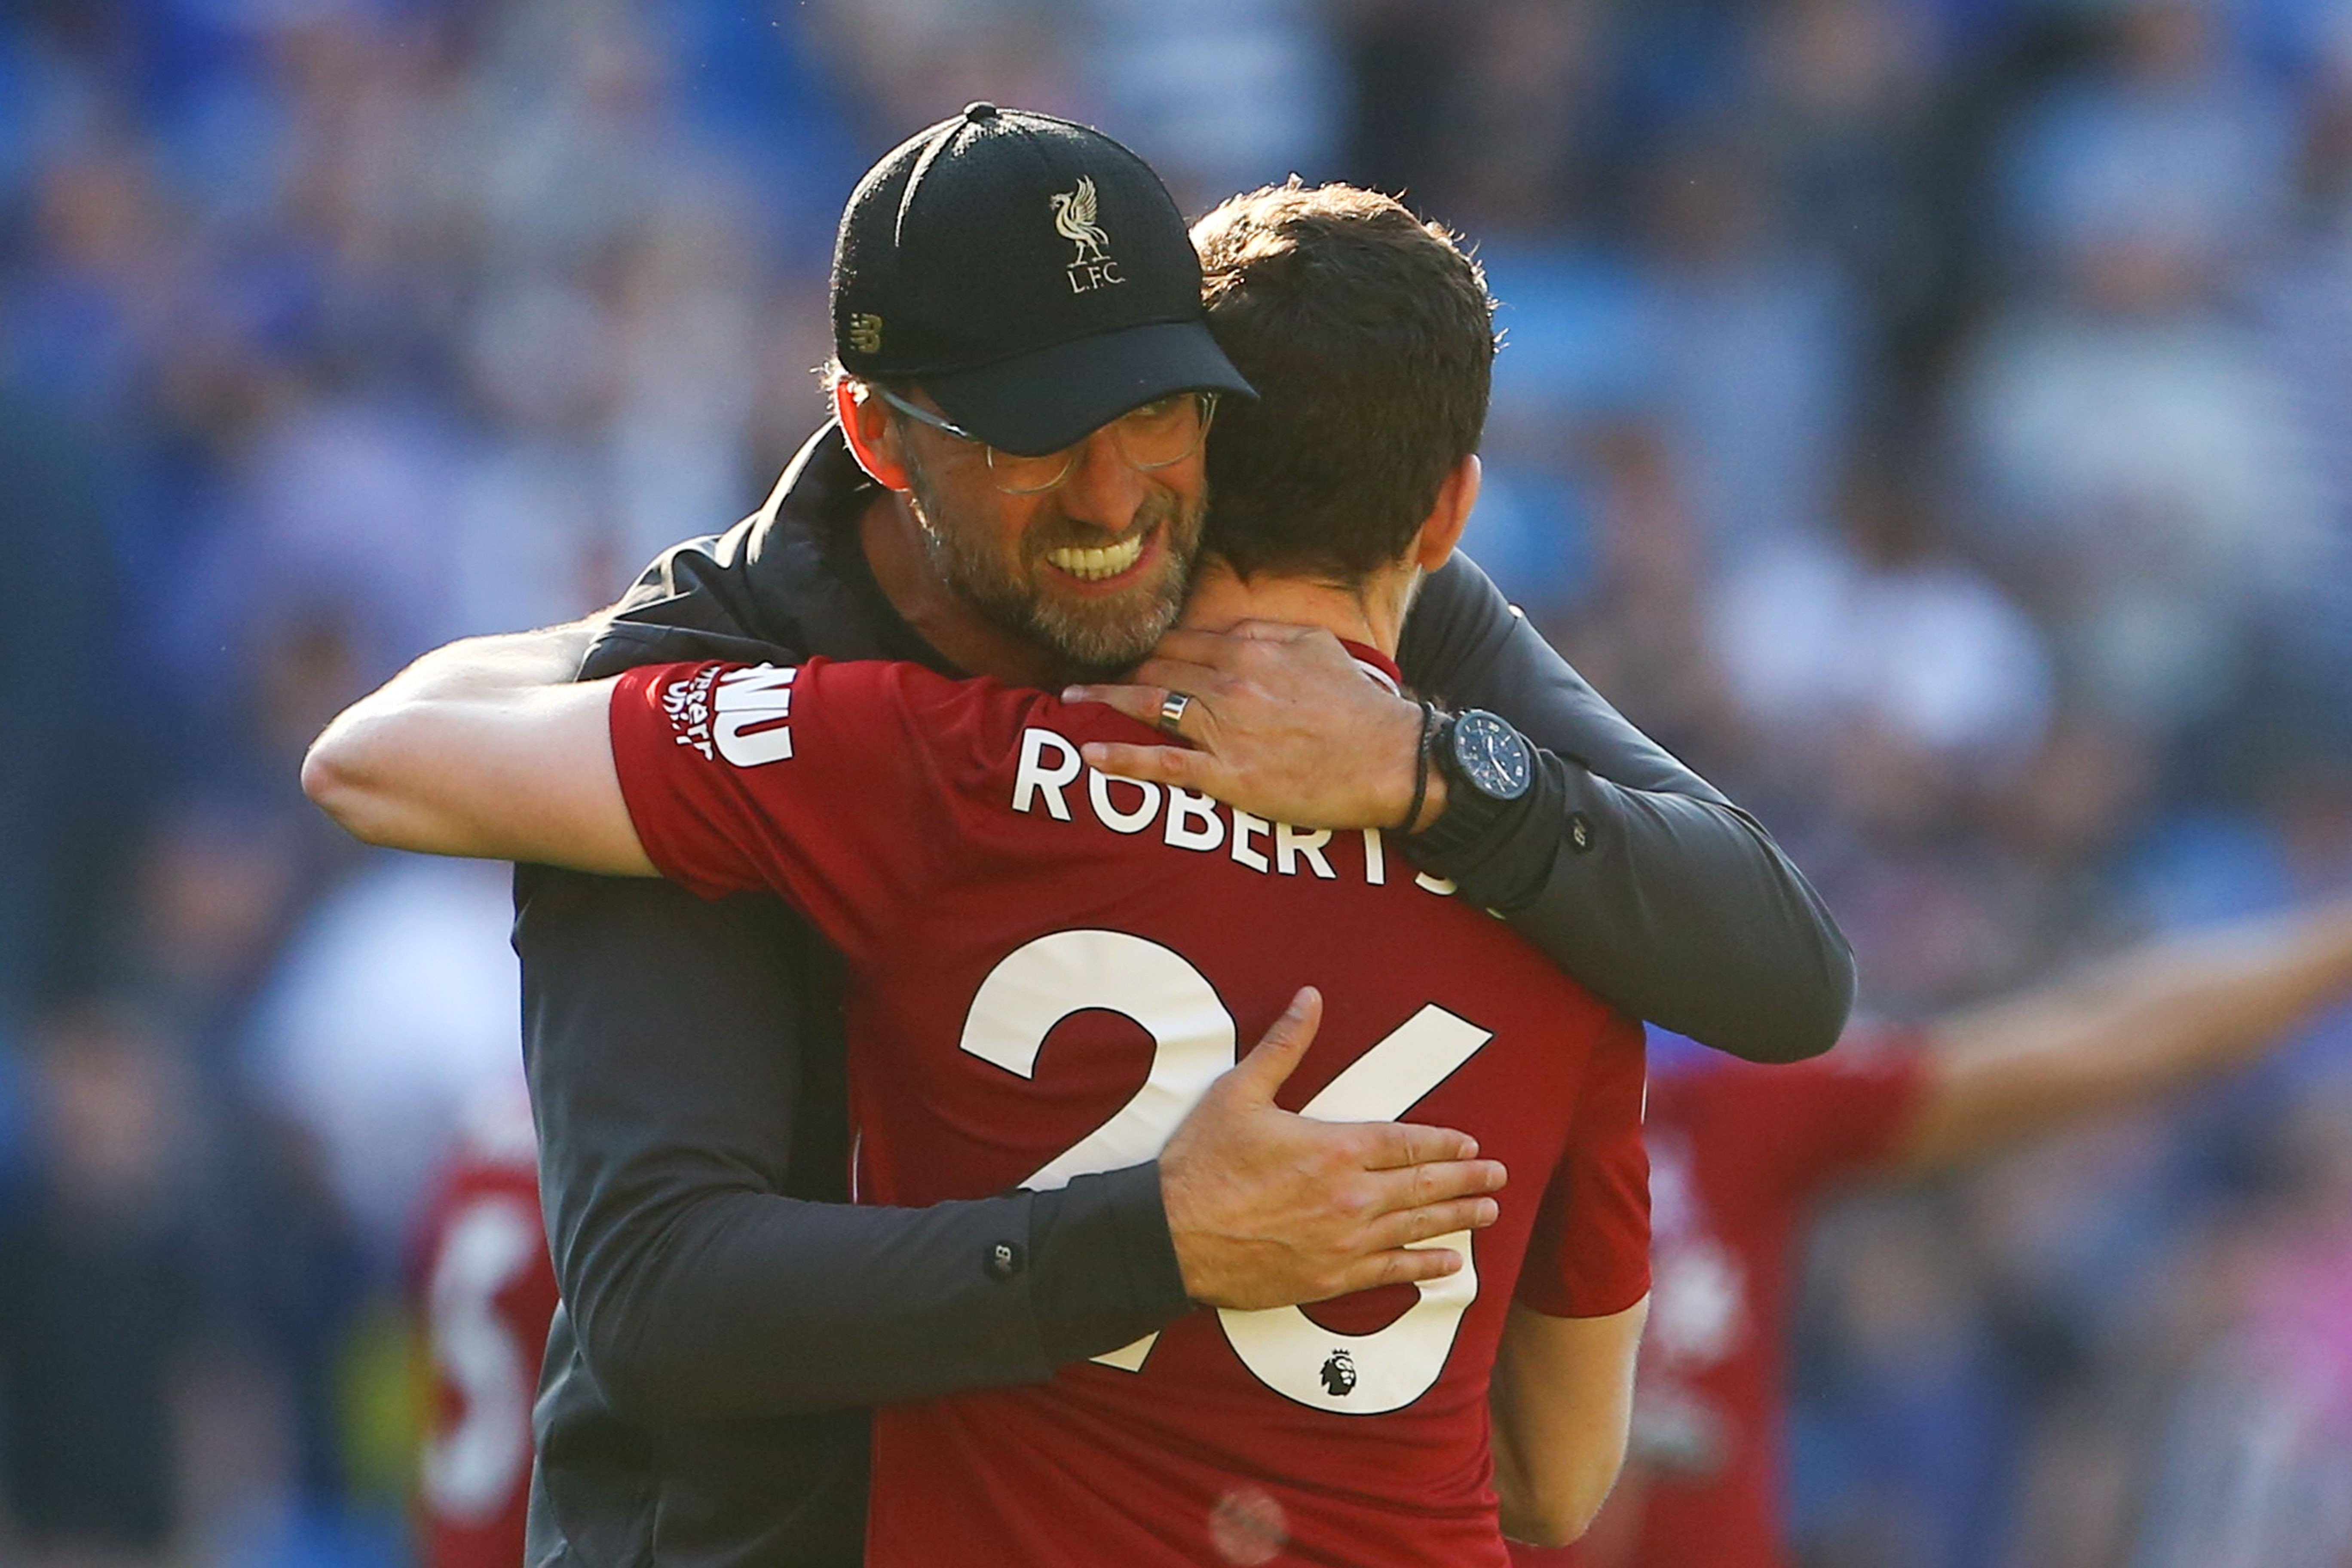 c2eb0e25fa9910 Liverpool are as good as they have been for many years – even if they win  nothing, it has been a fine season